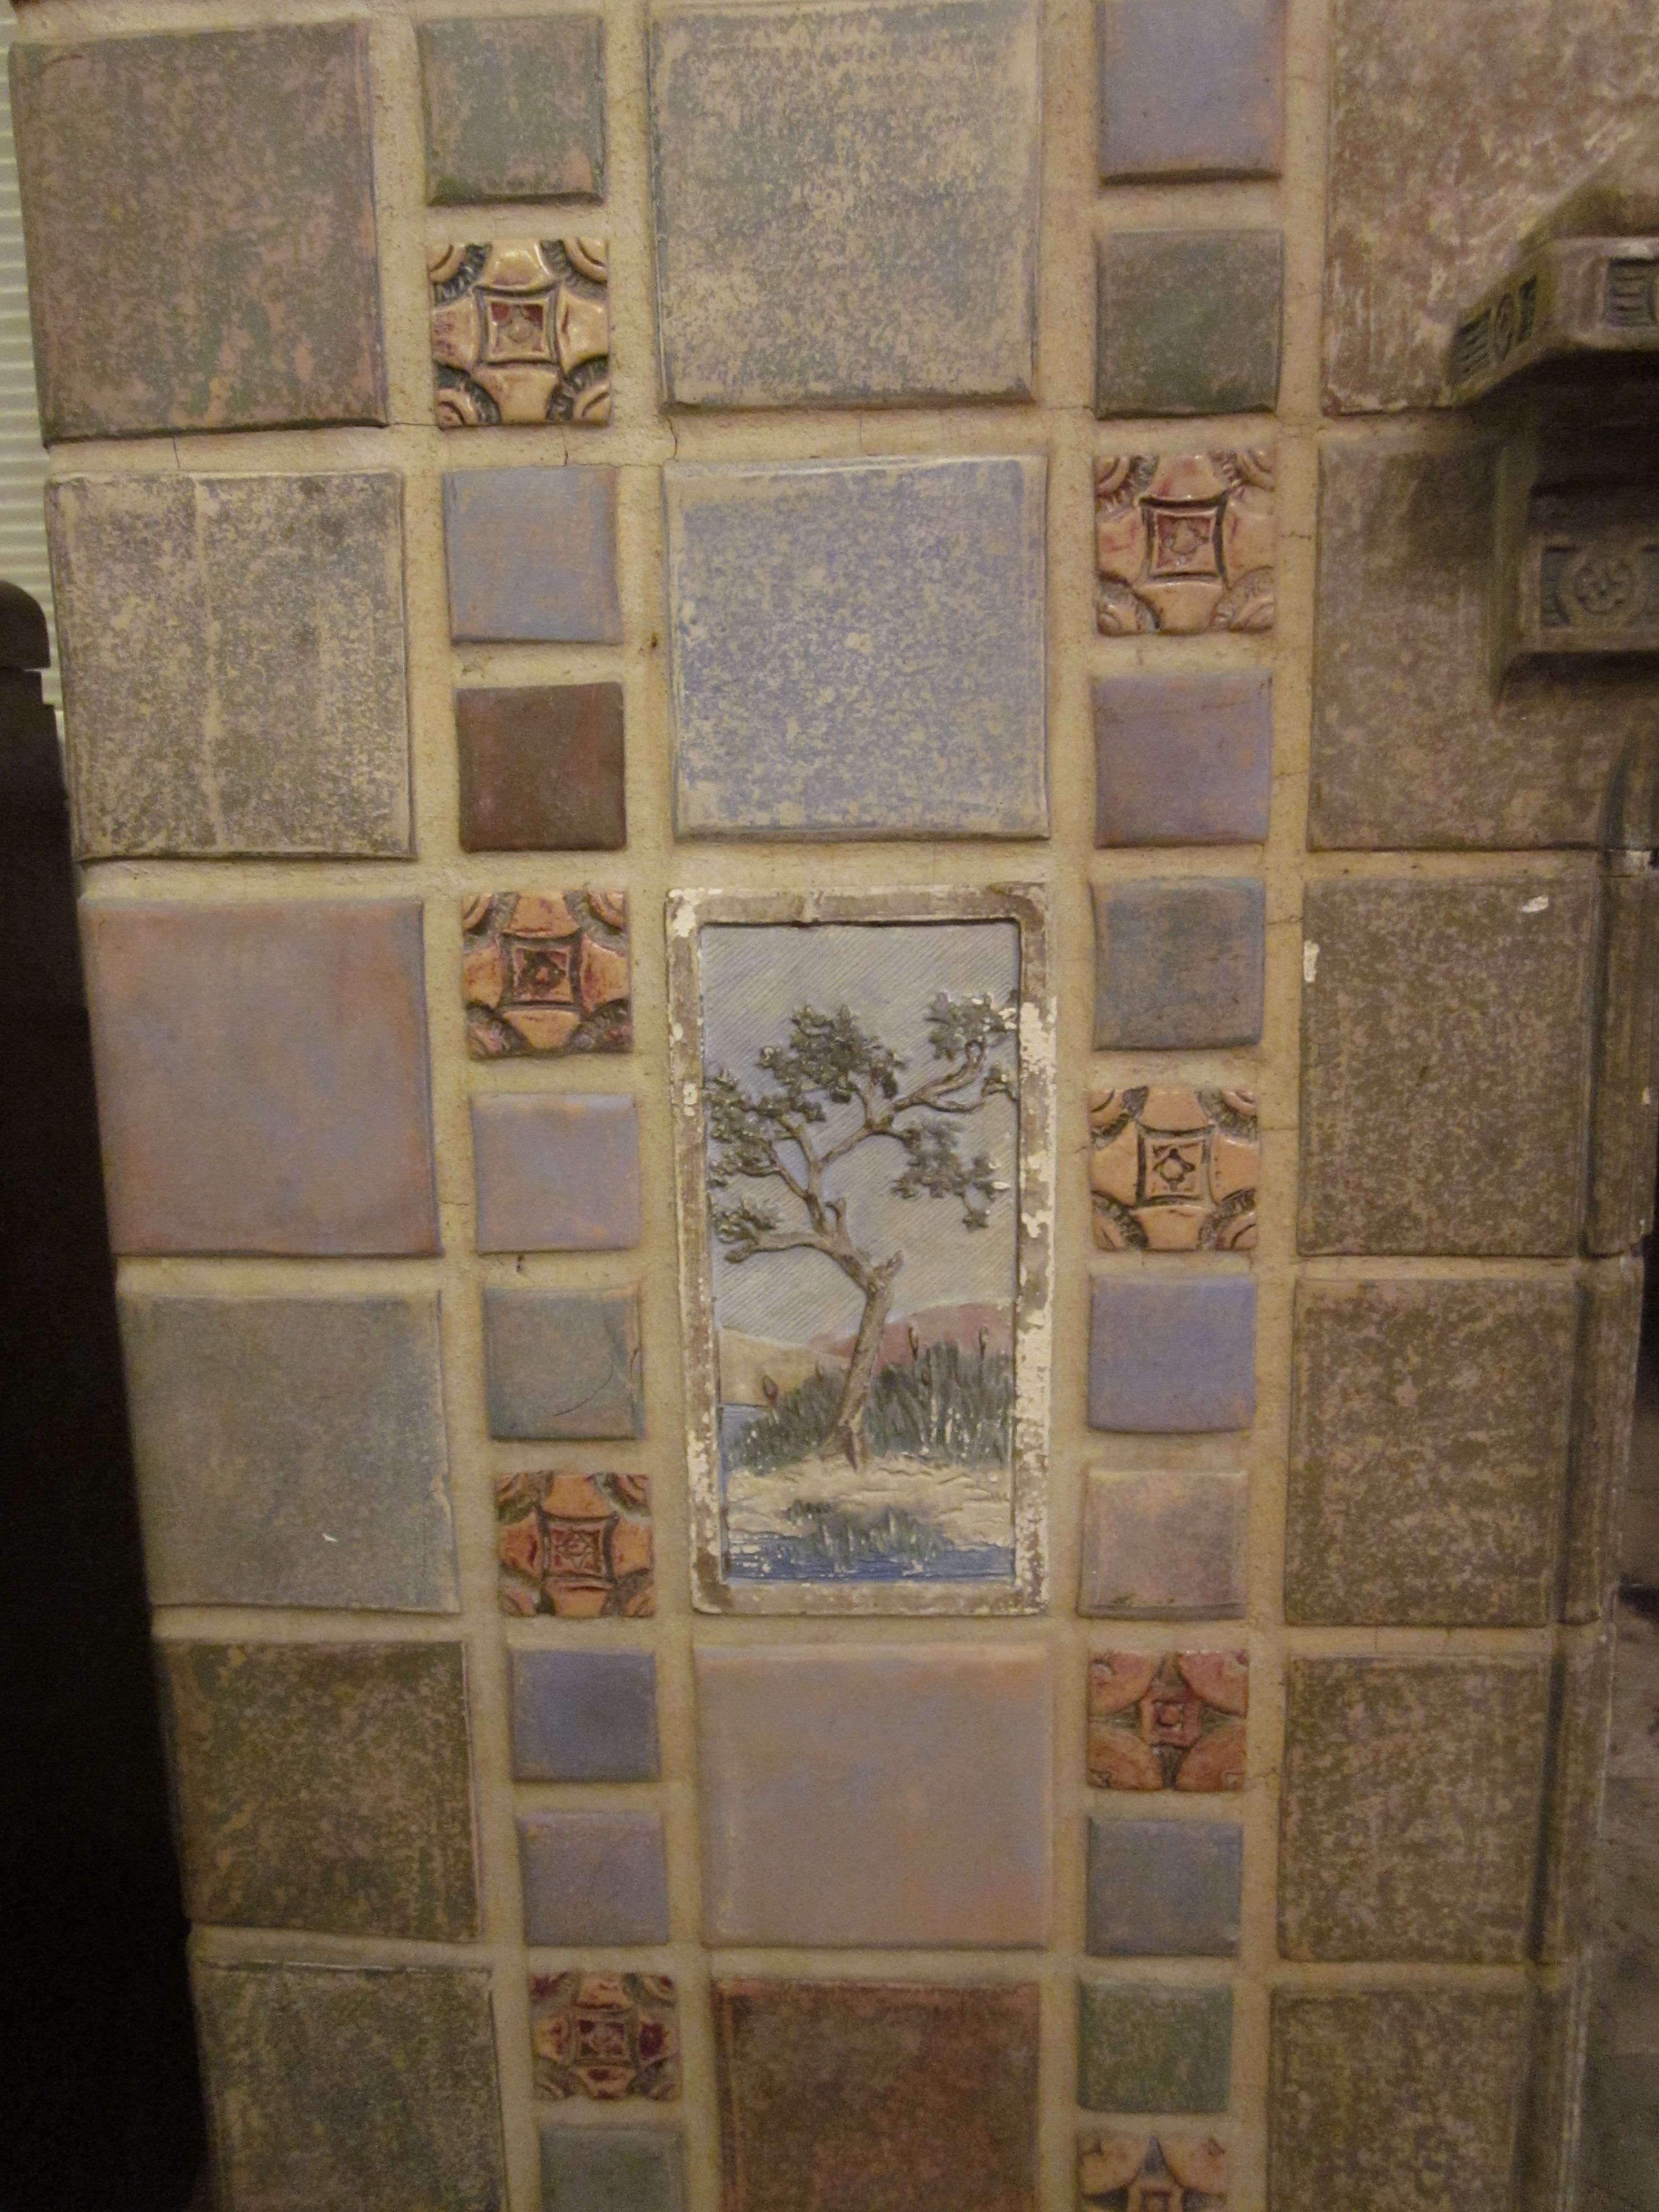 Fireplace from early 1900s in portland or early 1900s tile fireplace from early 1900s in portland or dailygadgetfo Image collections